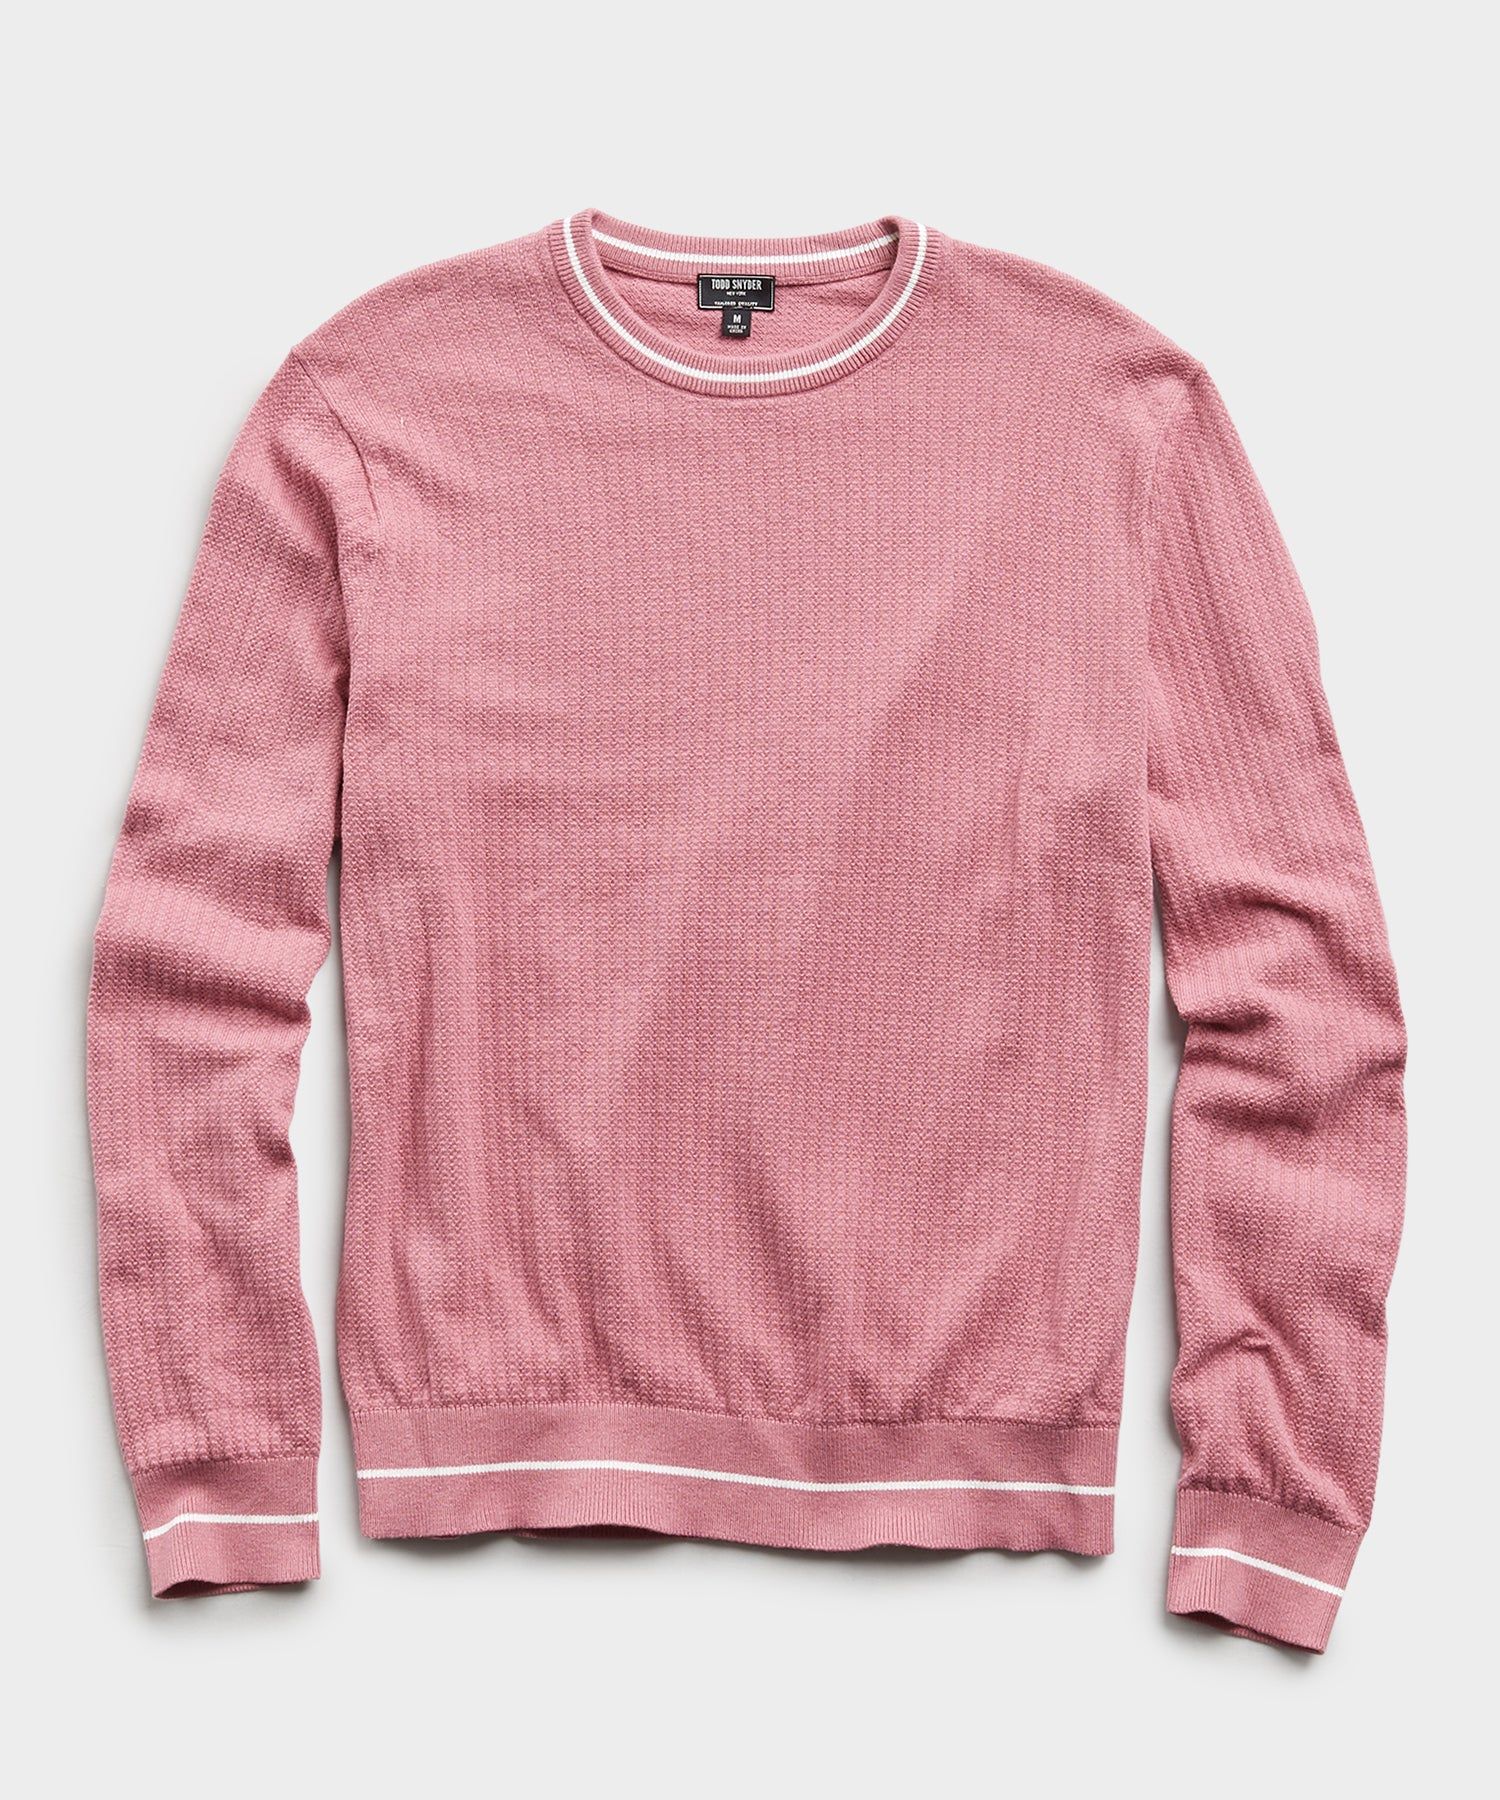 Textured Tipped Sweater in Pink